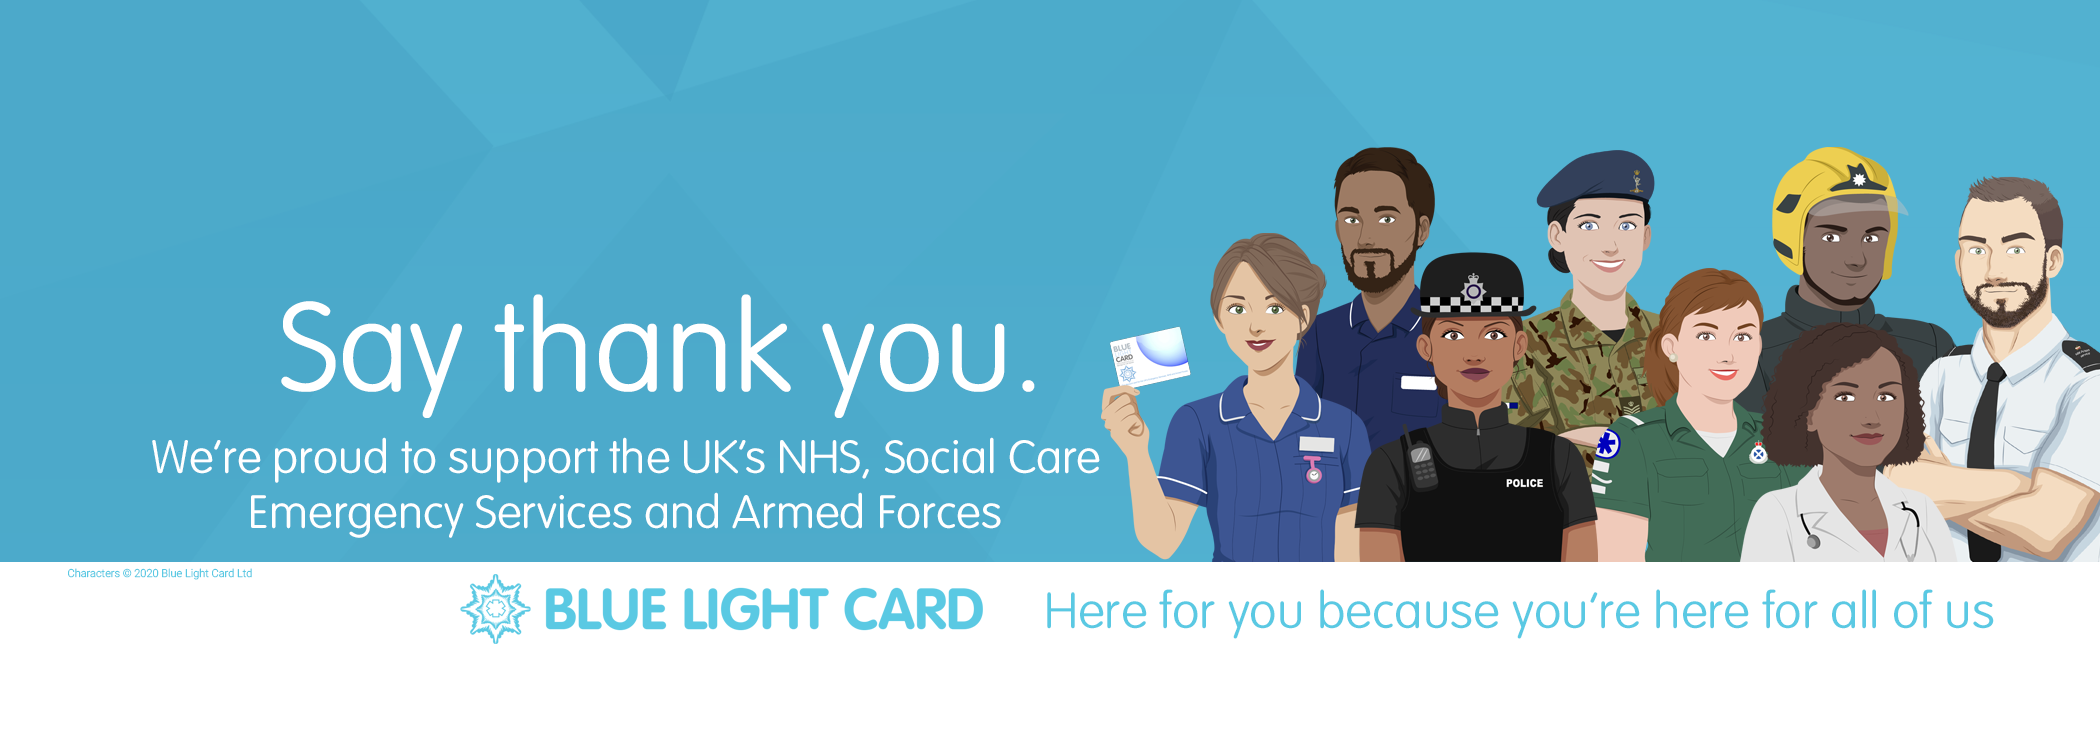 Help say Thankyou to the NHS, Emergency Services and Armed Forces! BLue Light Card the UKs largest Emergency Service, NHS and Armed Forces Discount Provider